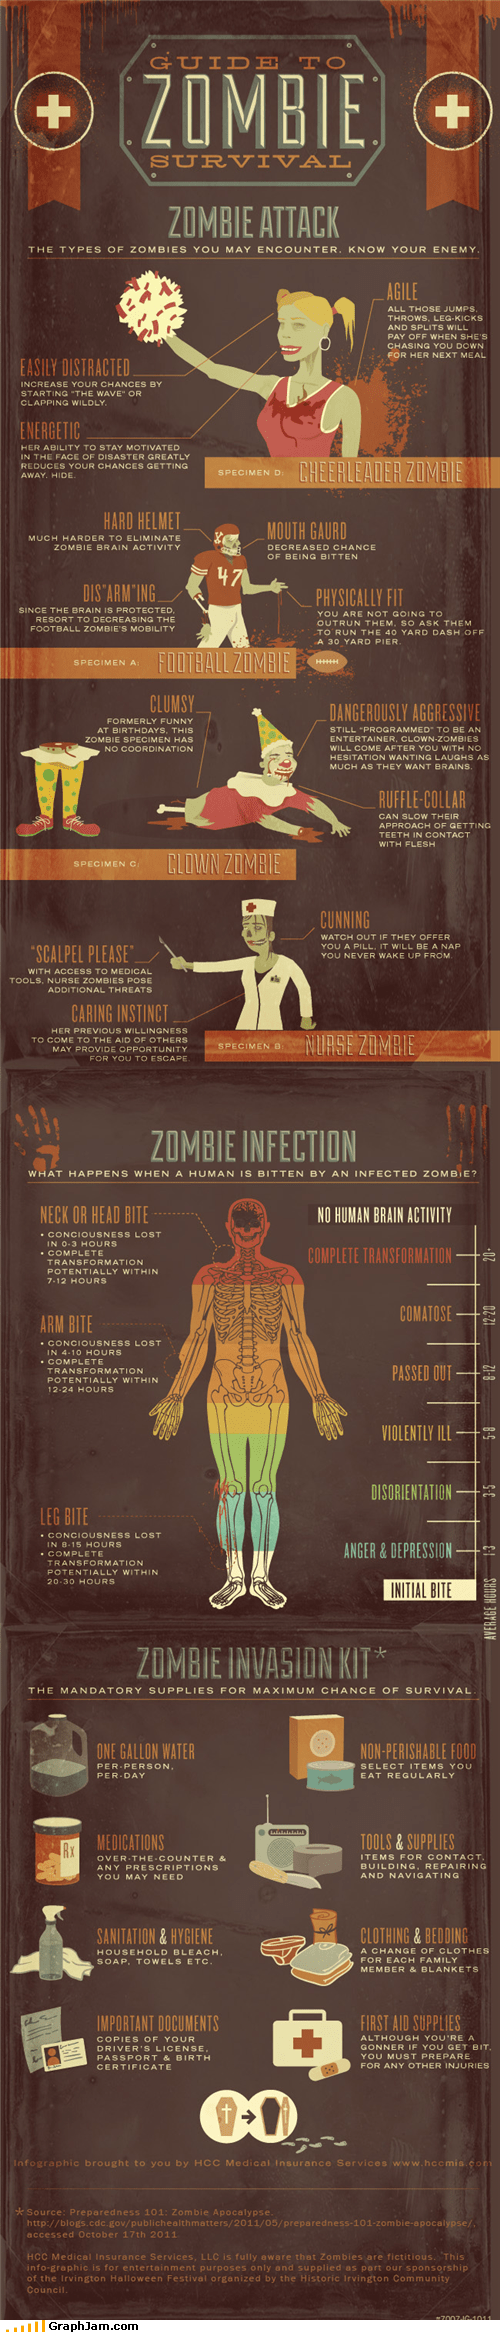 best of week,infographic,preparation,survival,zombie,zombie apocalypse